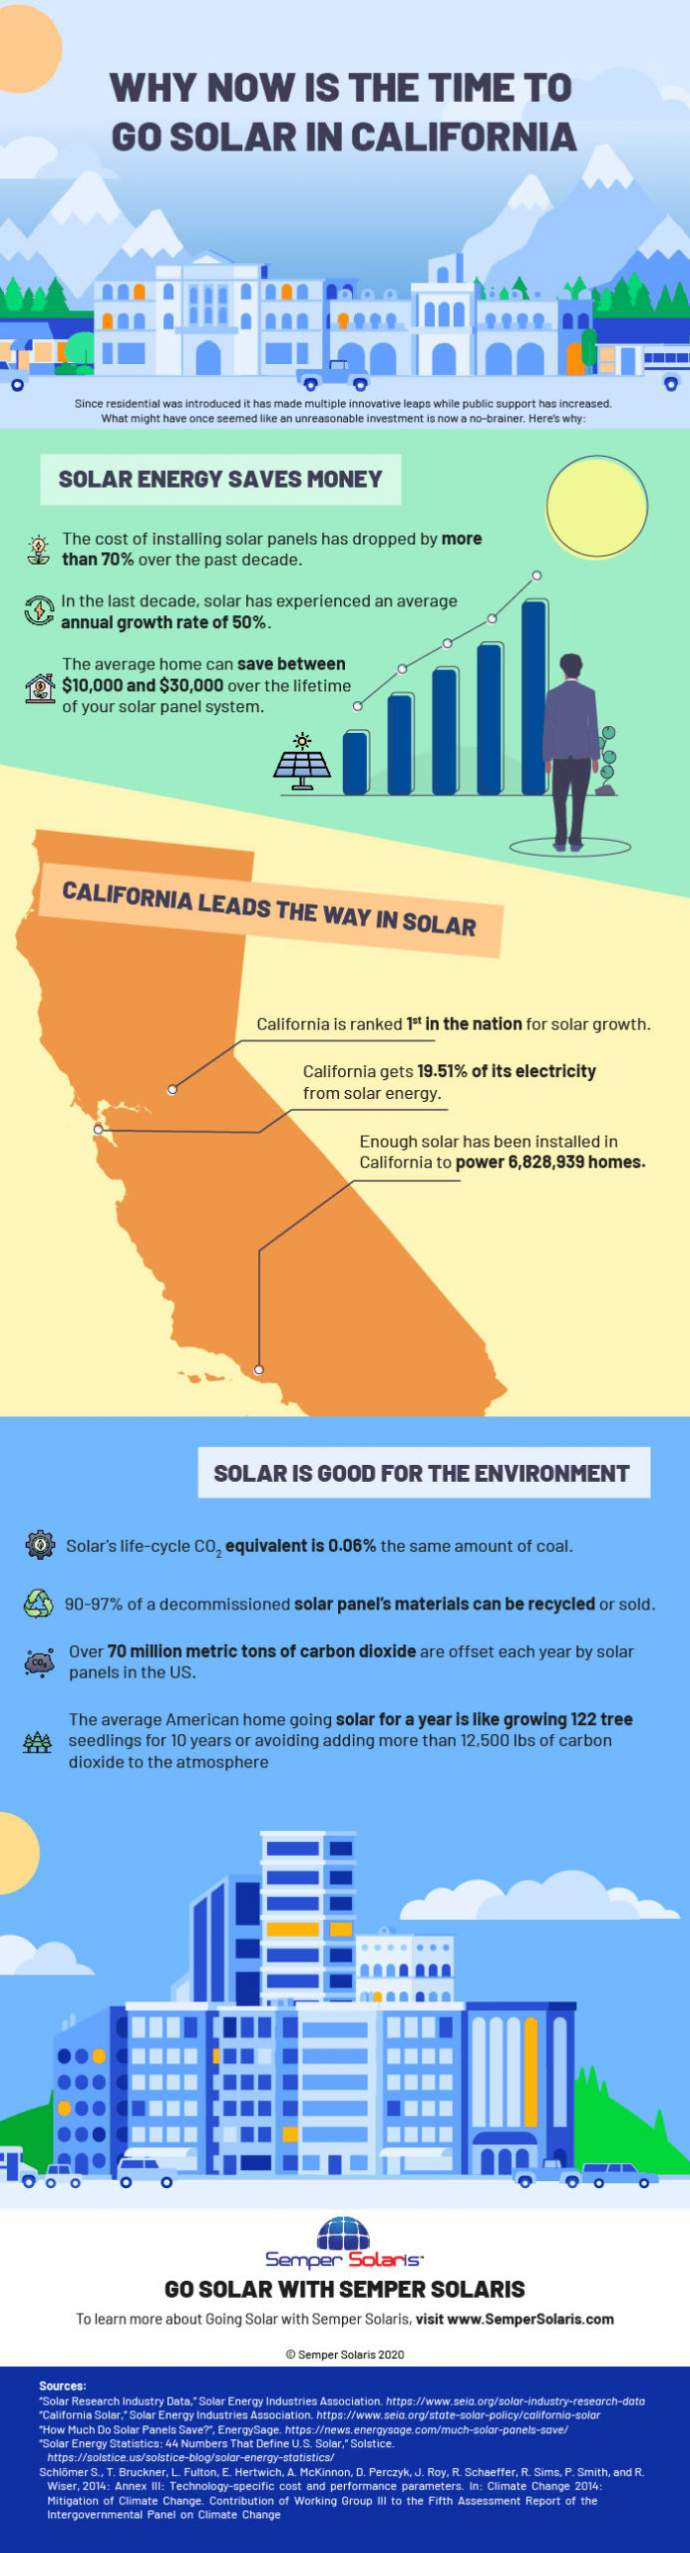 Why Now Is The Time To Go Solar In California